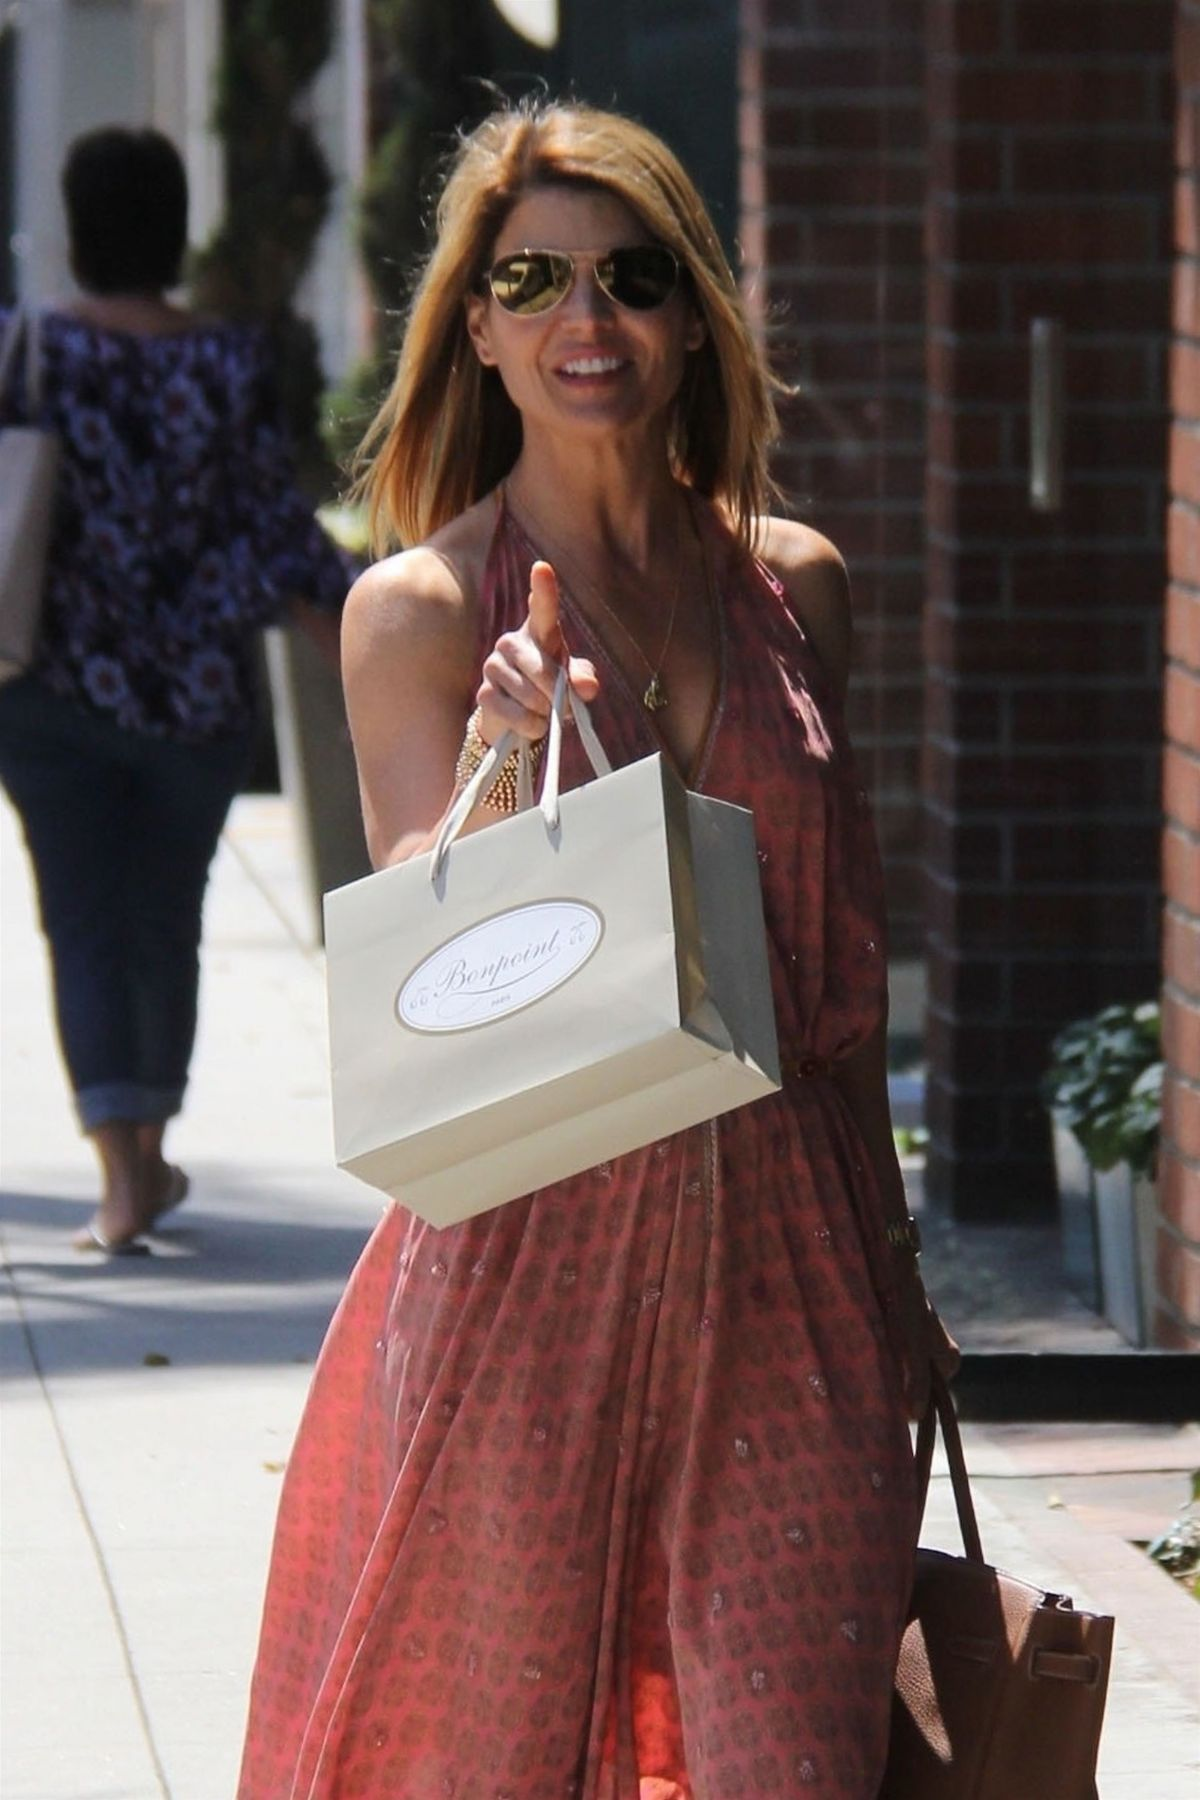 lori loughlin heading to a nail salon in beverly hills 05 07 2018